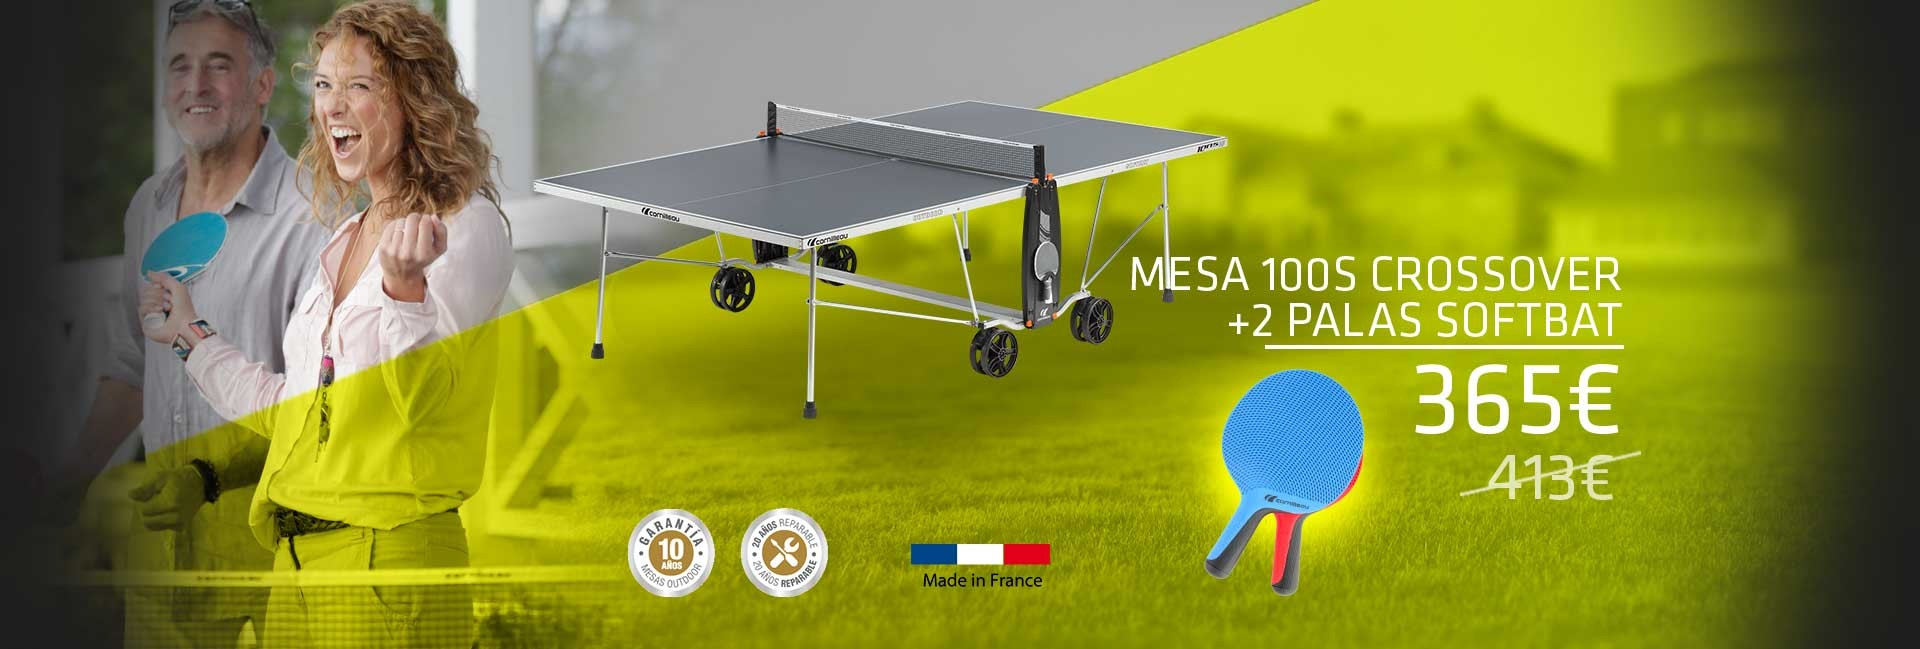 Promo Mesa 100S Crossover + Softbat DUO